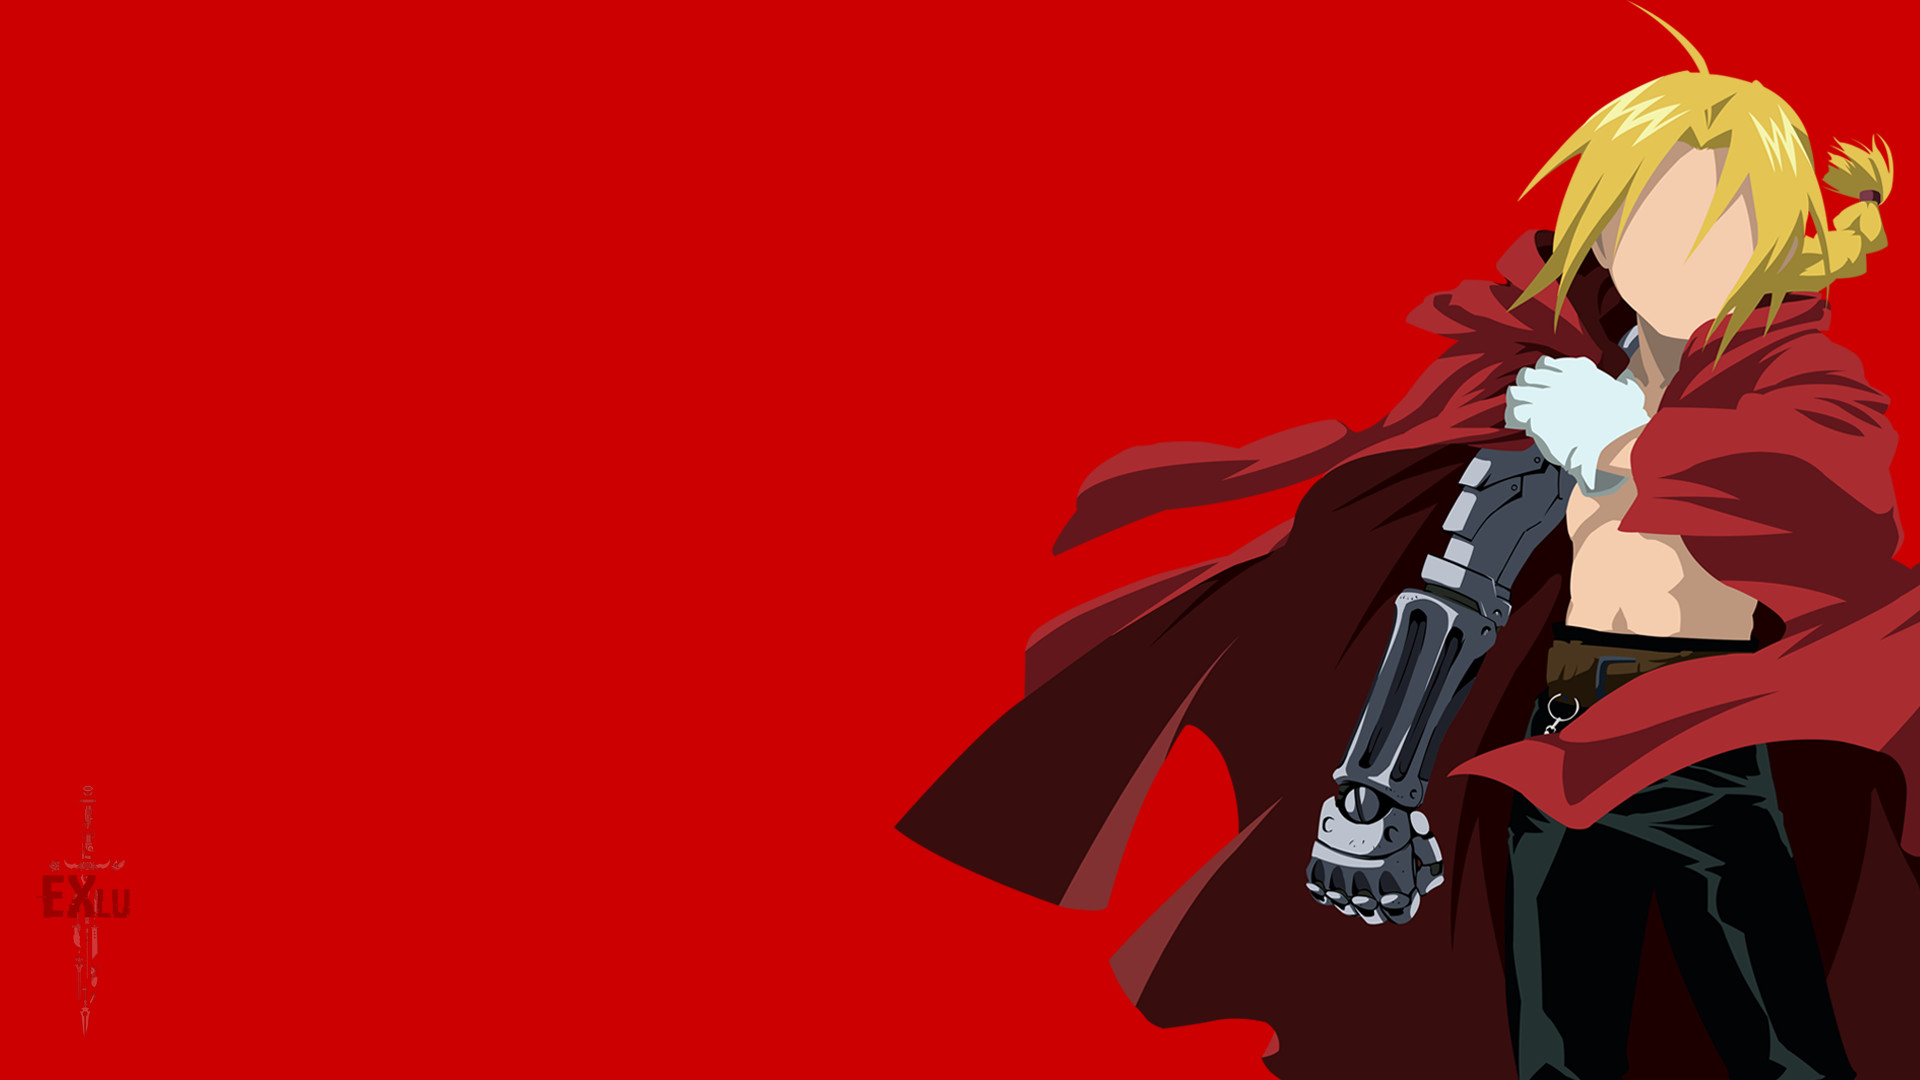 Edward Elric Wallpaper 64 Images